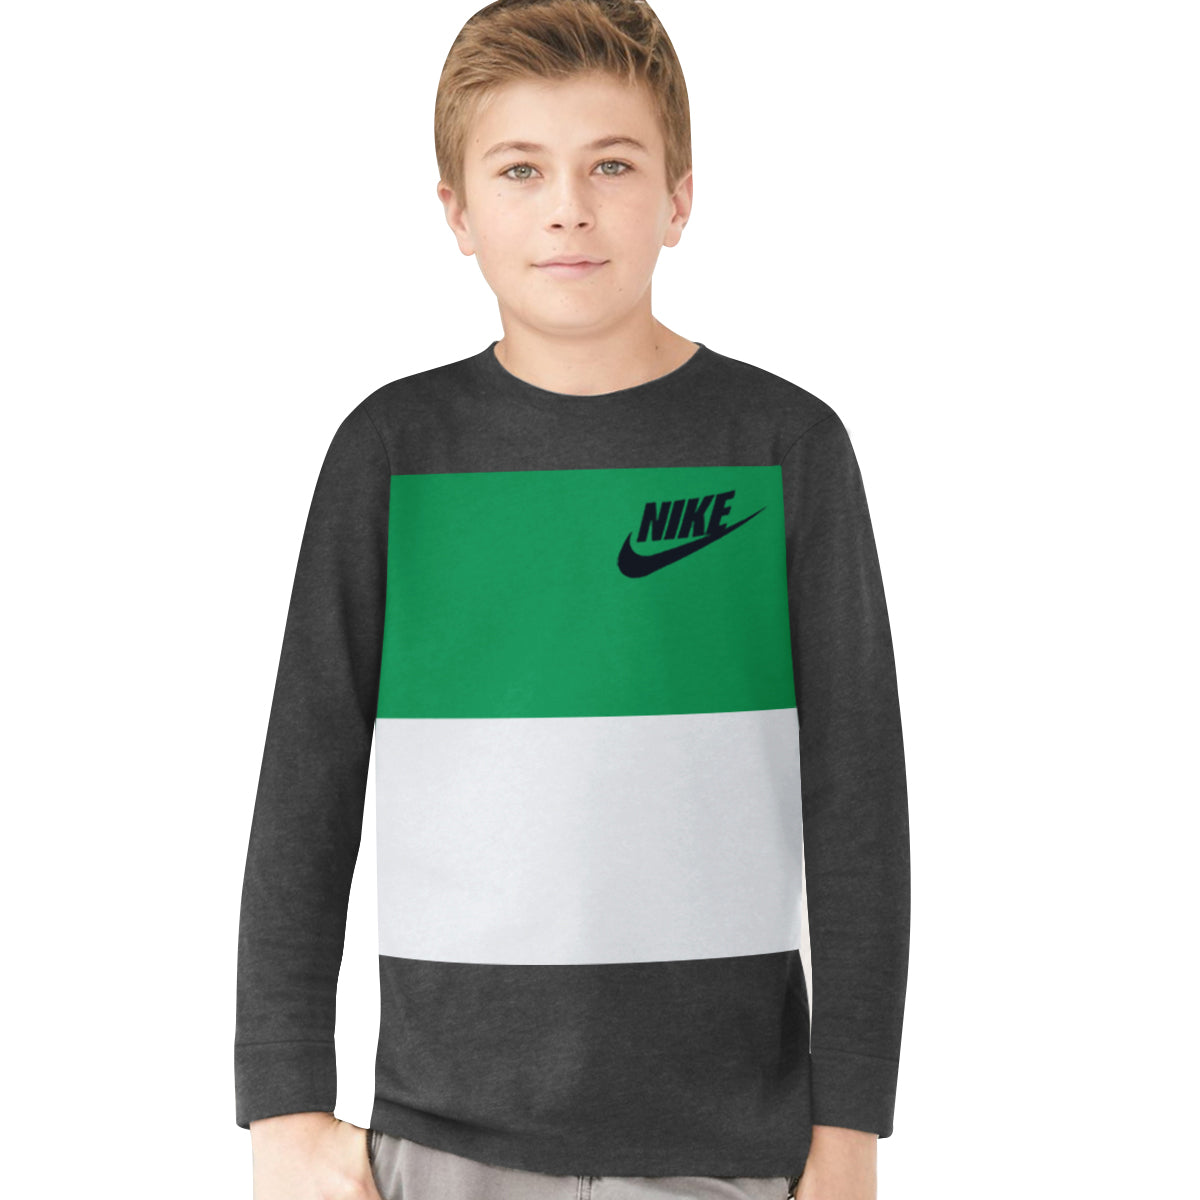 NK Crew Neck Single Jersey Long Sleeve Tee Shirt For Boys-Charcoal with Green & Ice Blue Panels-BE11960